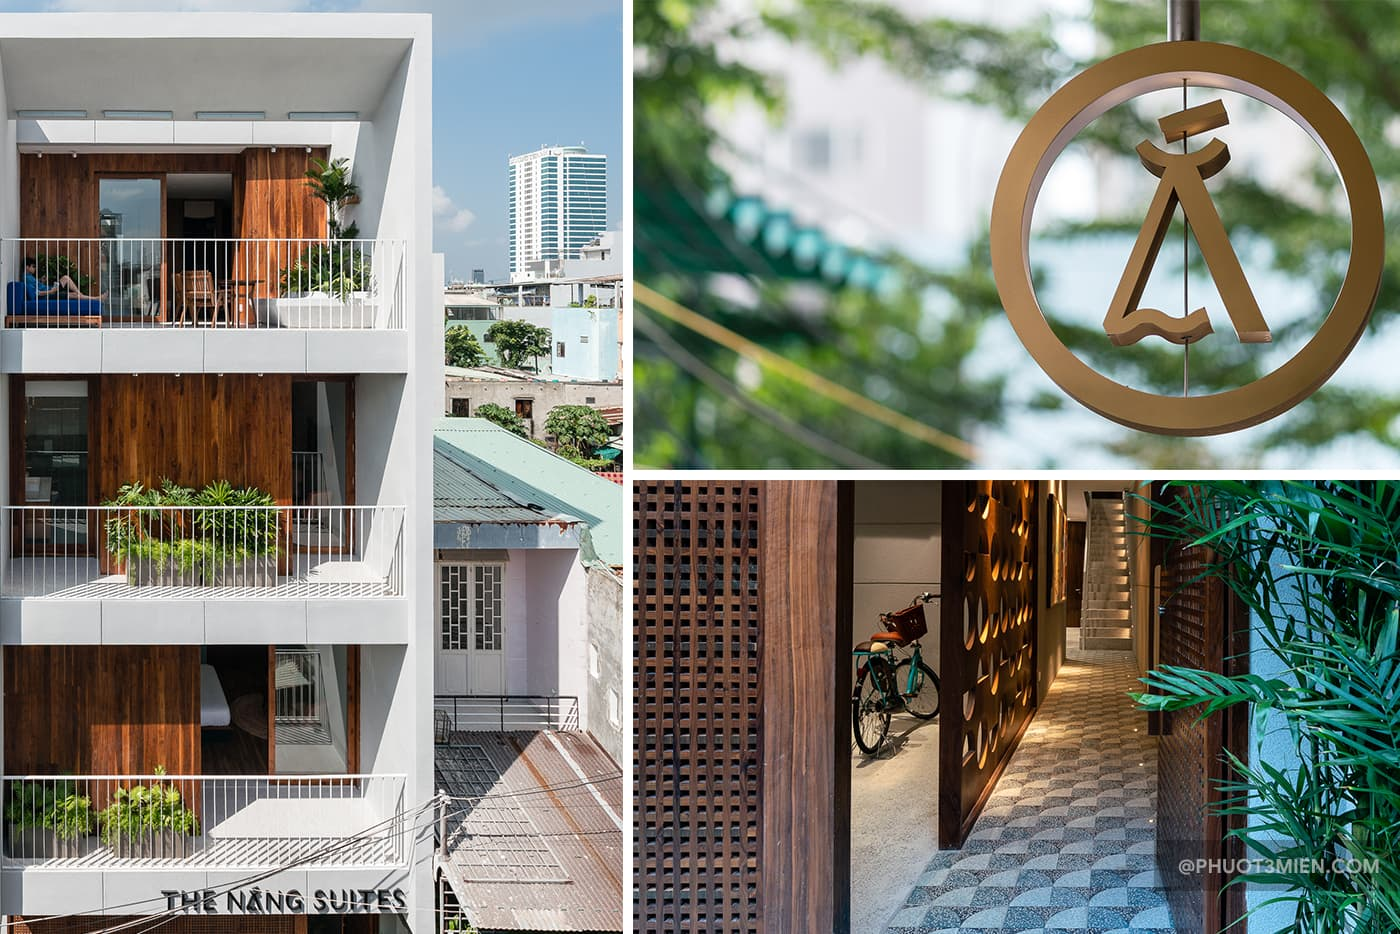 the nắng suites